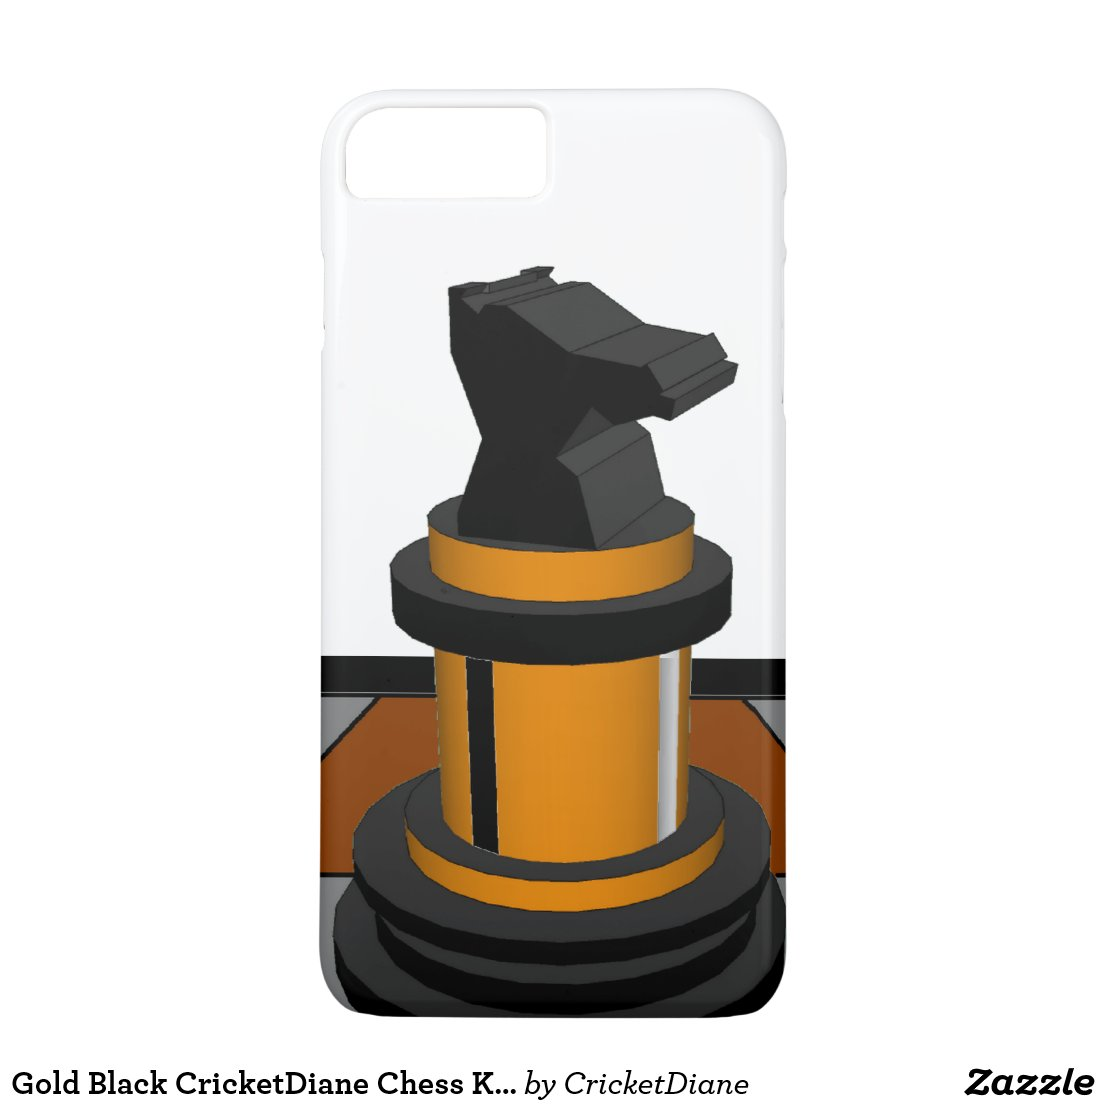 Gold Black CricketDiane Chess Knight Geeky Nerd iPhone 8 Plus/7 Plus Case